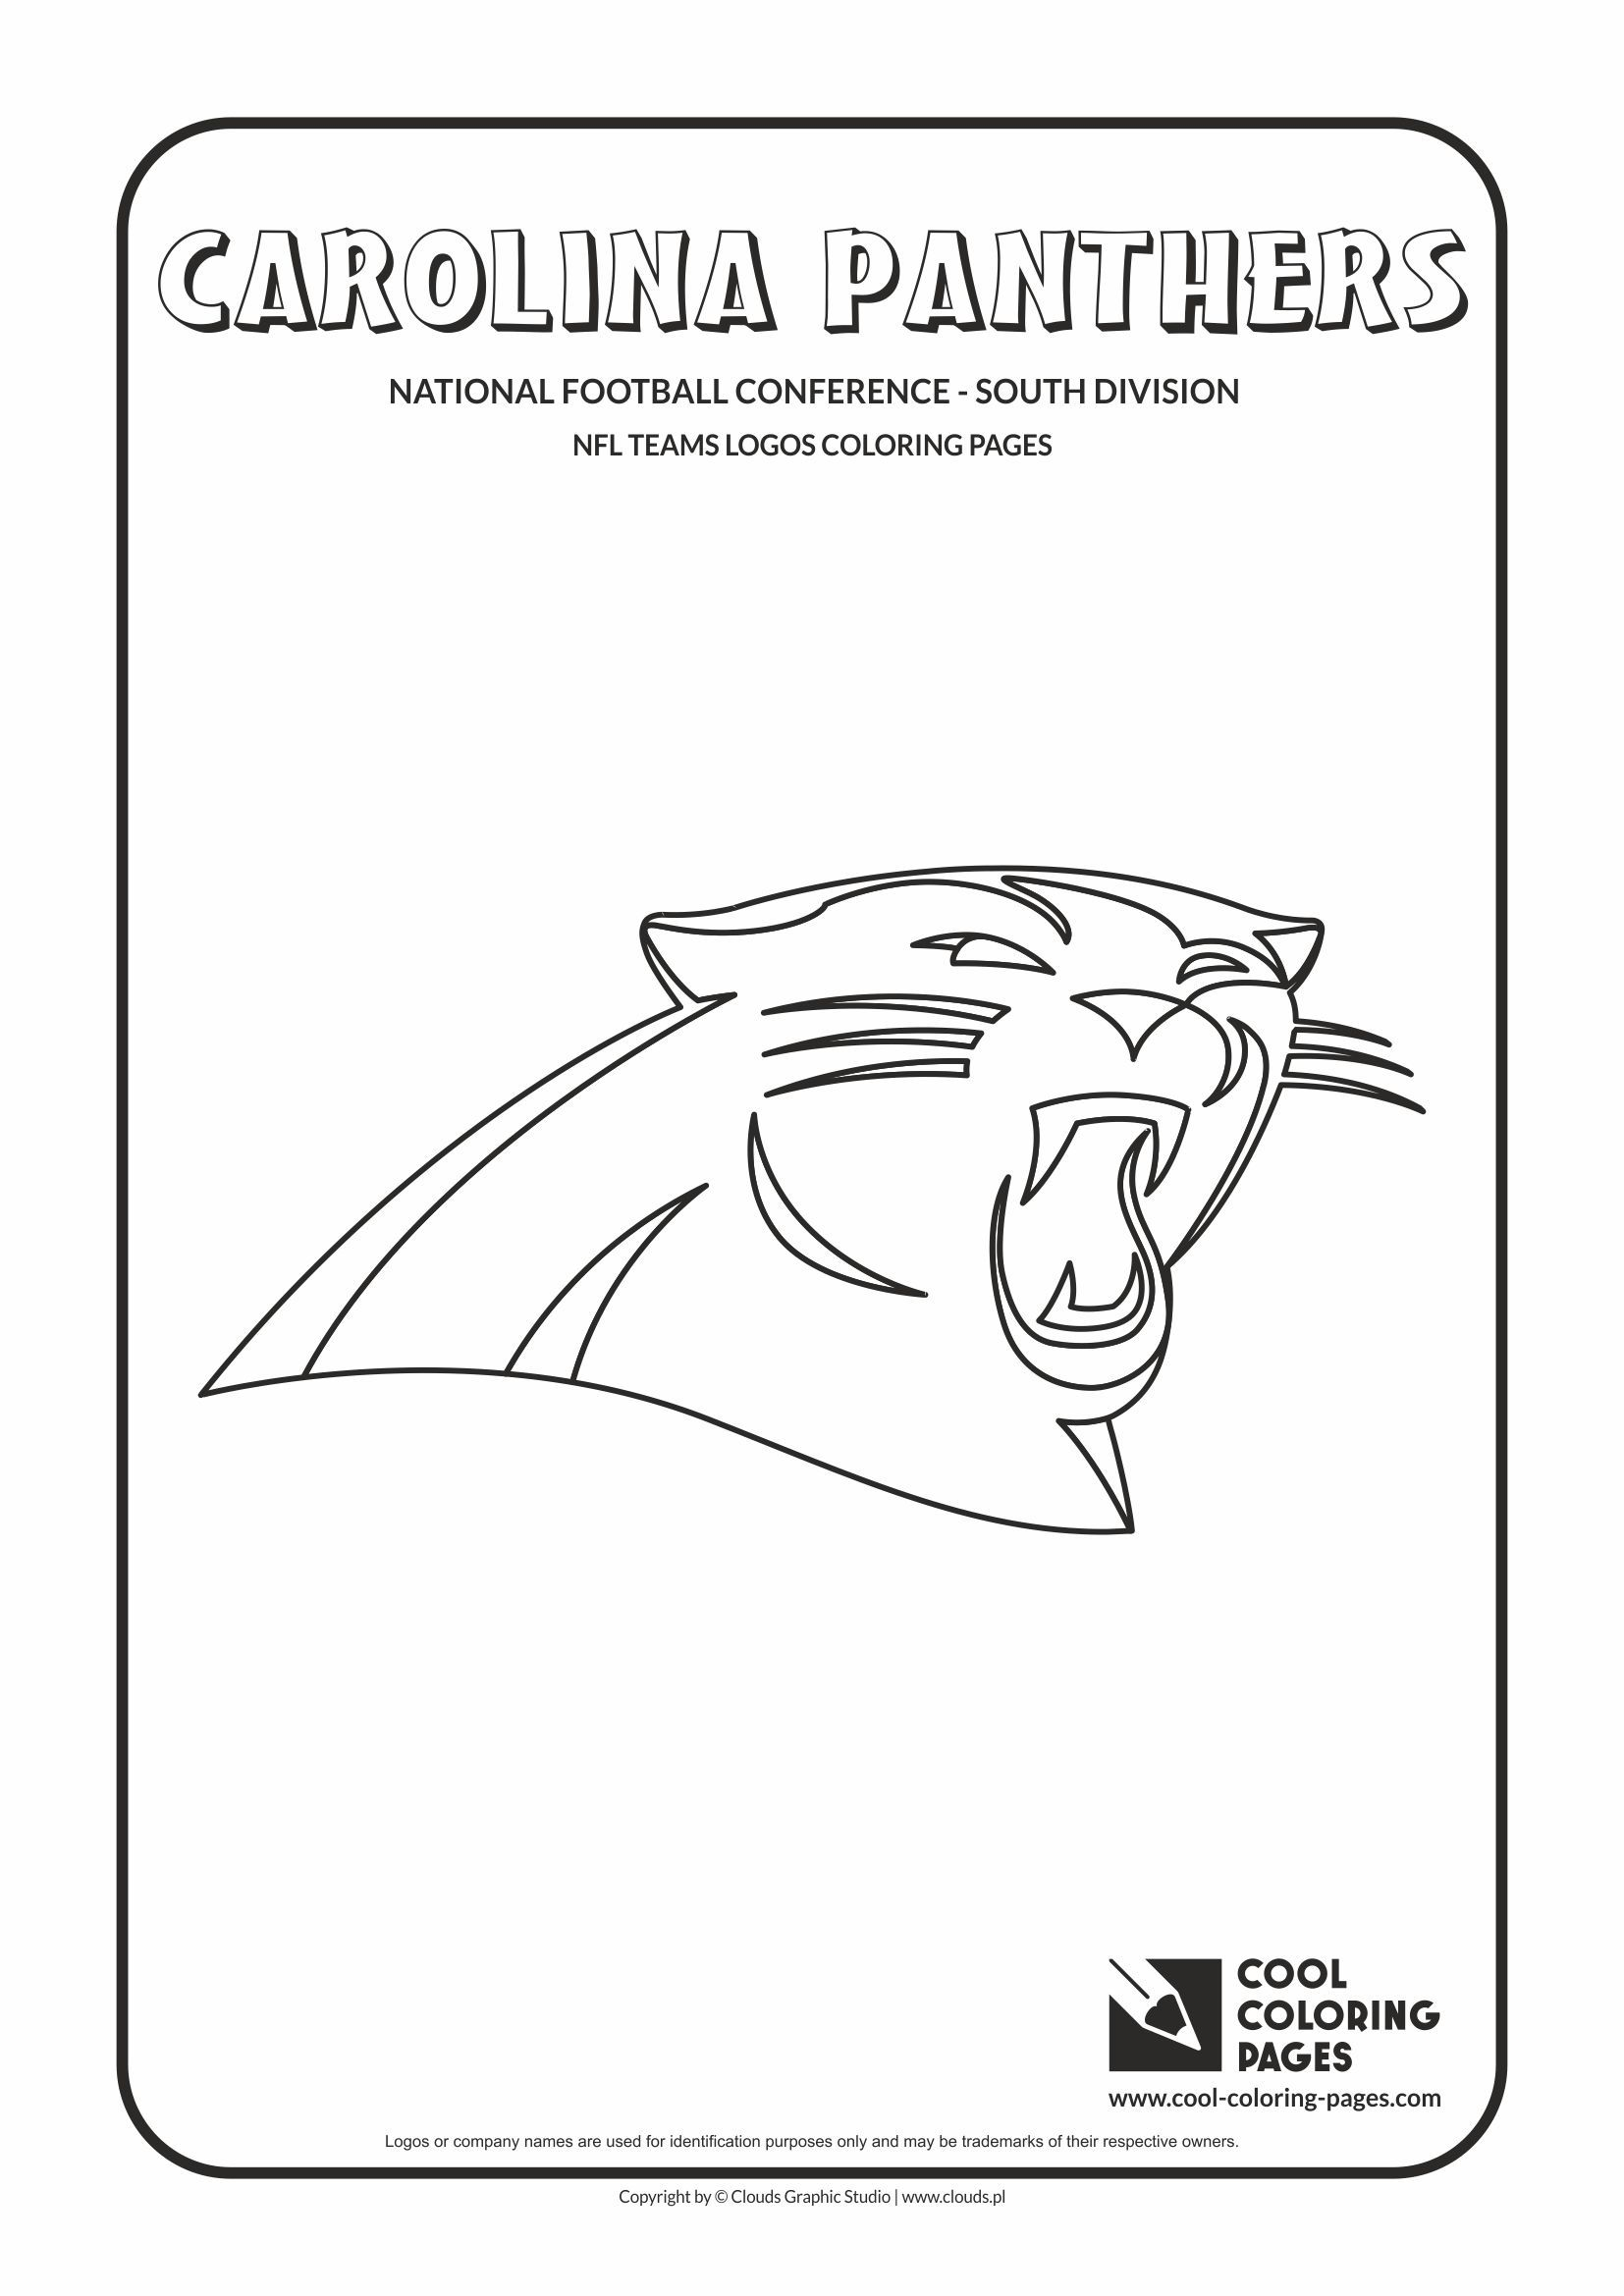 Cool Coloring Pages NFL American